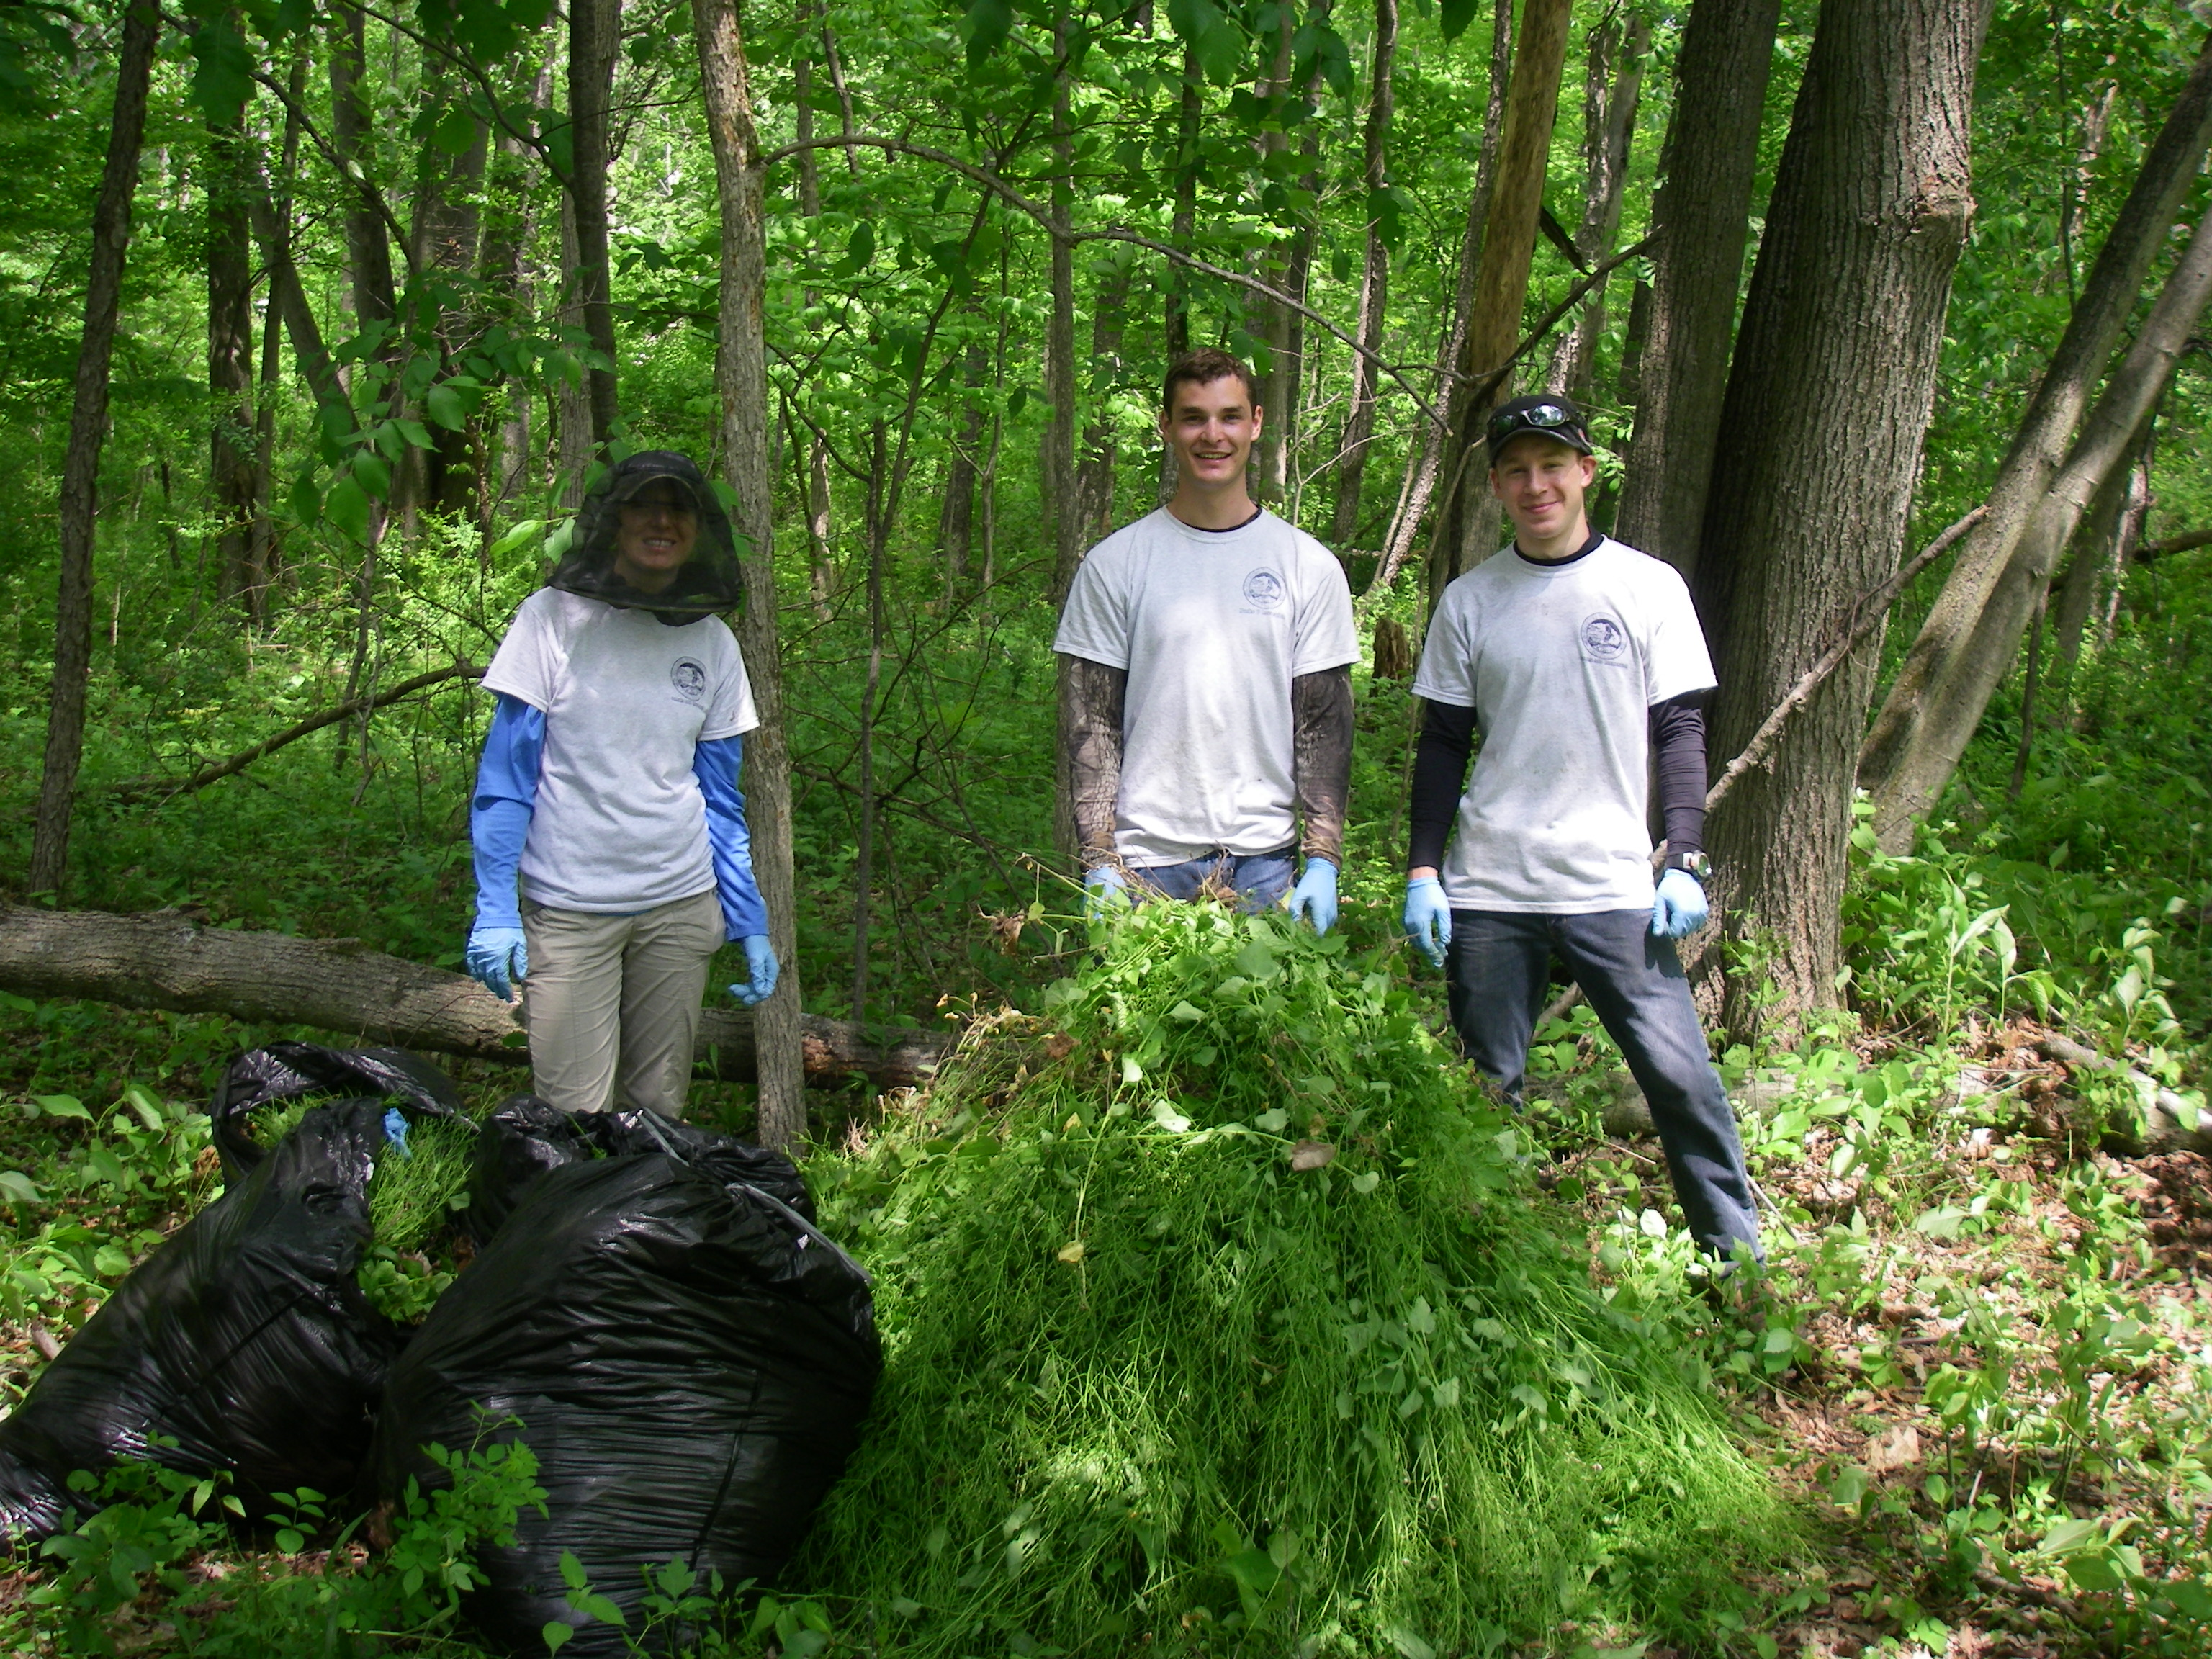 Caring for Natural Areas in Our Parks